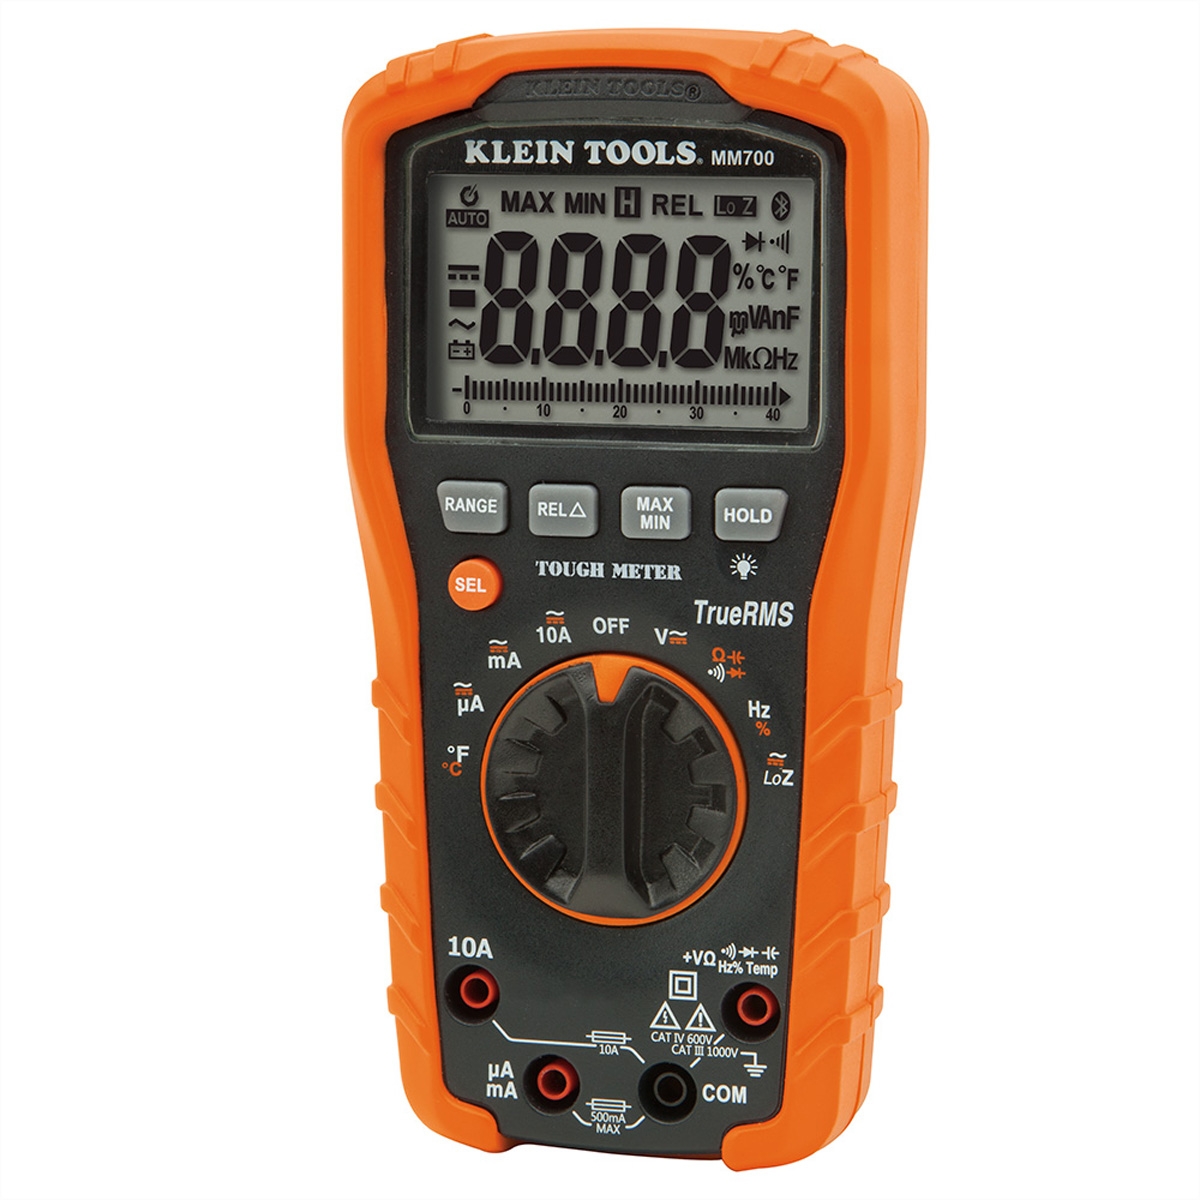 KLEIN TOOLS MM700 Digitaler Multimeter TRMS/Niedrige Impedanz, 1000 V